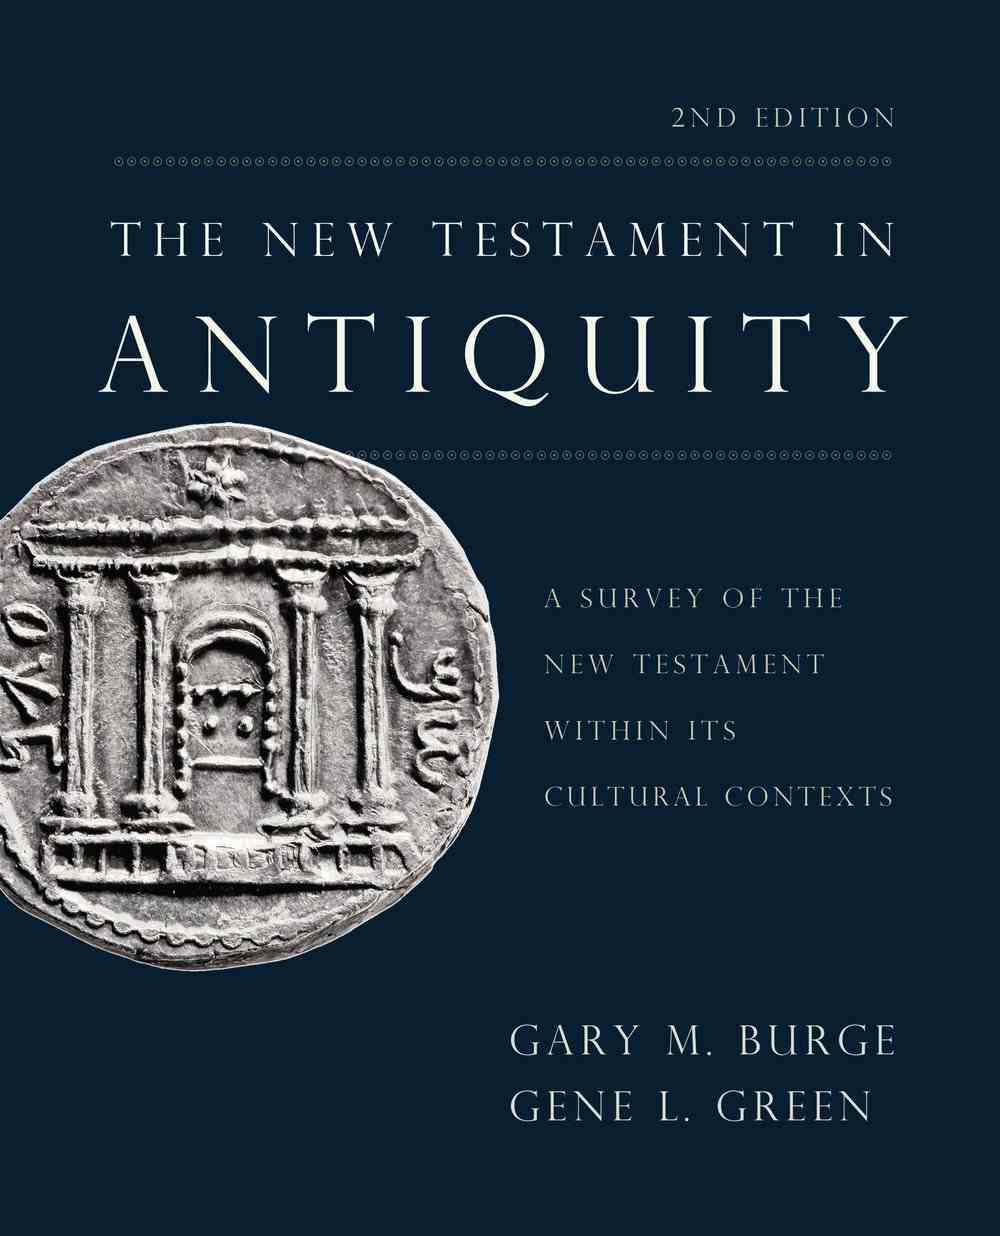 The New Testament in Antiquity: A Survey of the New Testament Within Its Cultural Contexts (2nd Edition) Hardback